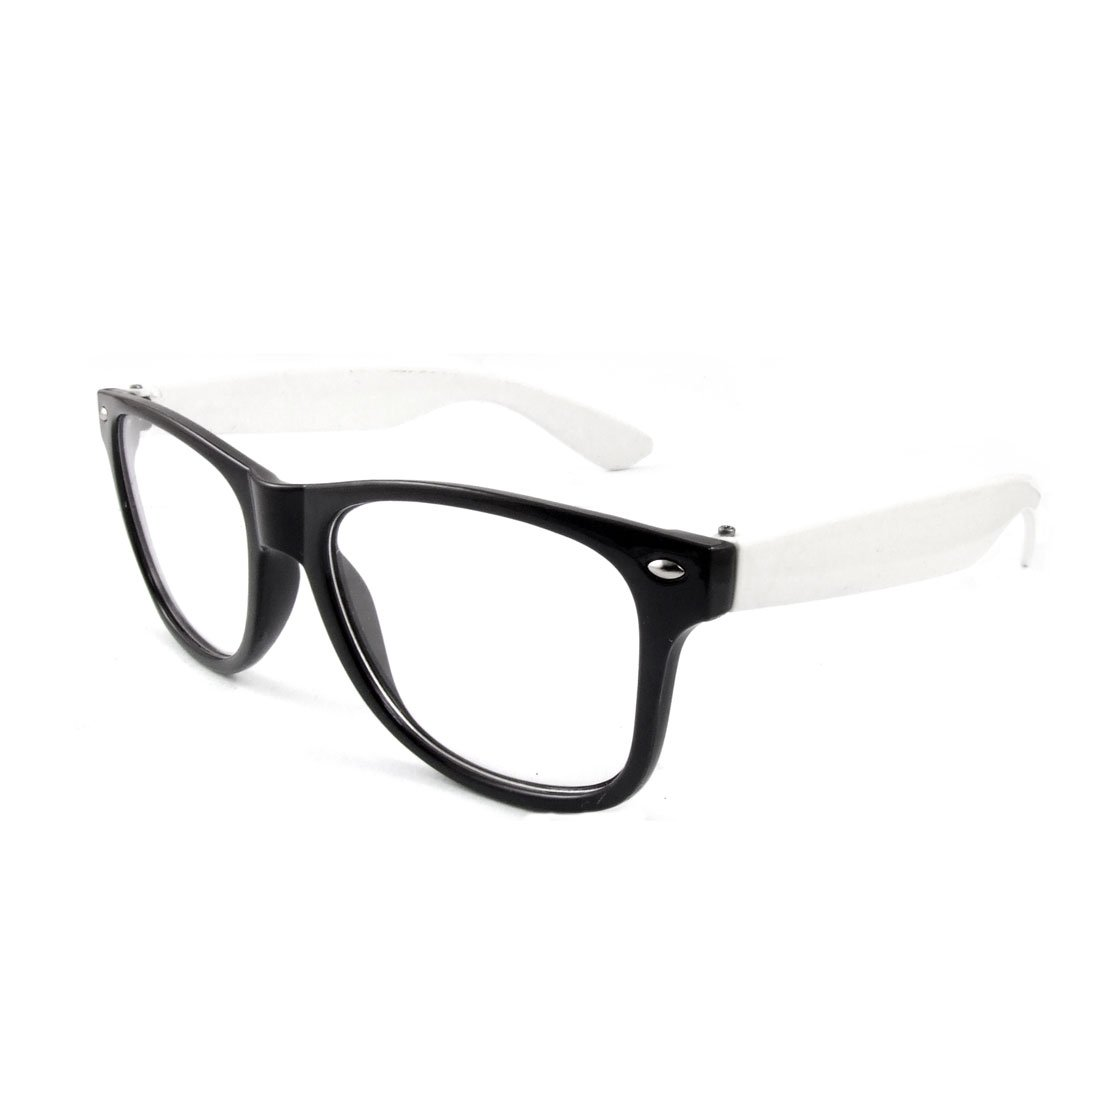 612f817c0ba Men Black Full Frame White Arms Clear Lens Plain Glasses Spectacles   Amazon.co.uk  Health   Personal Care